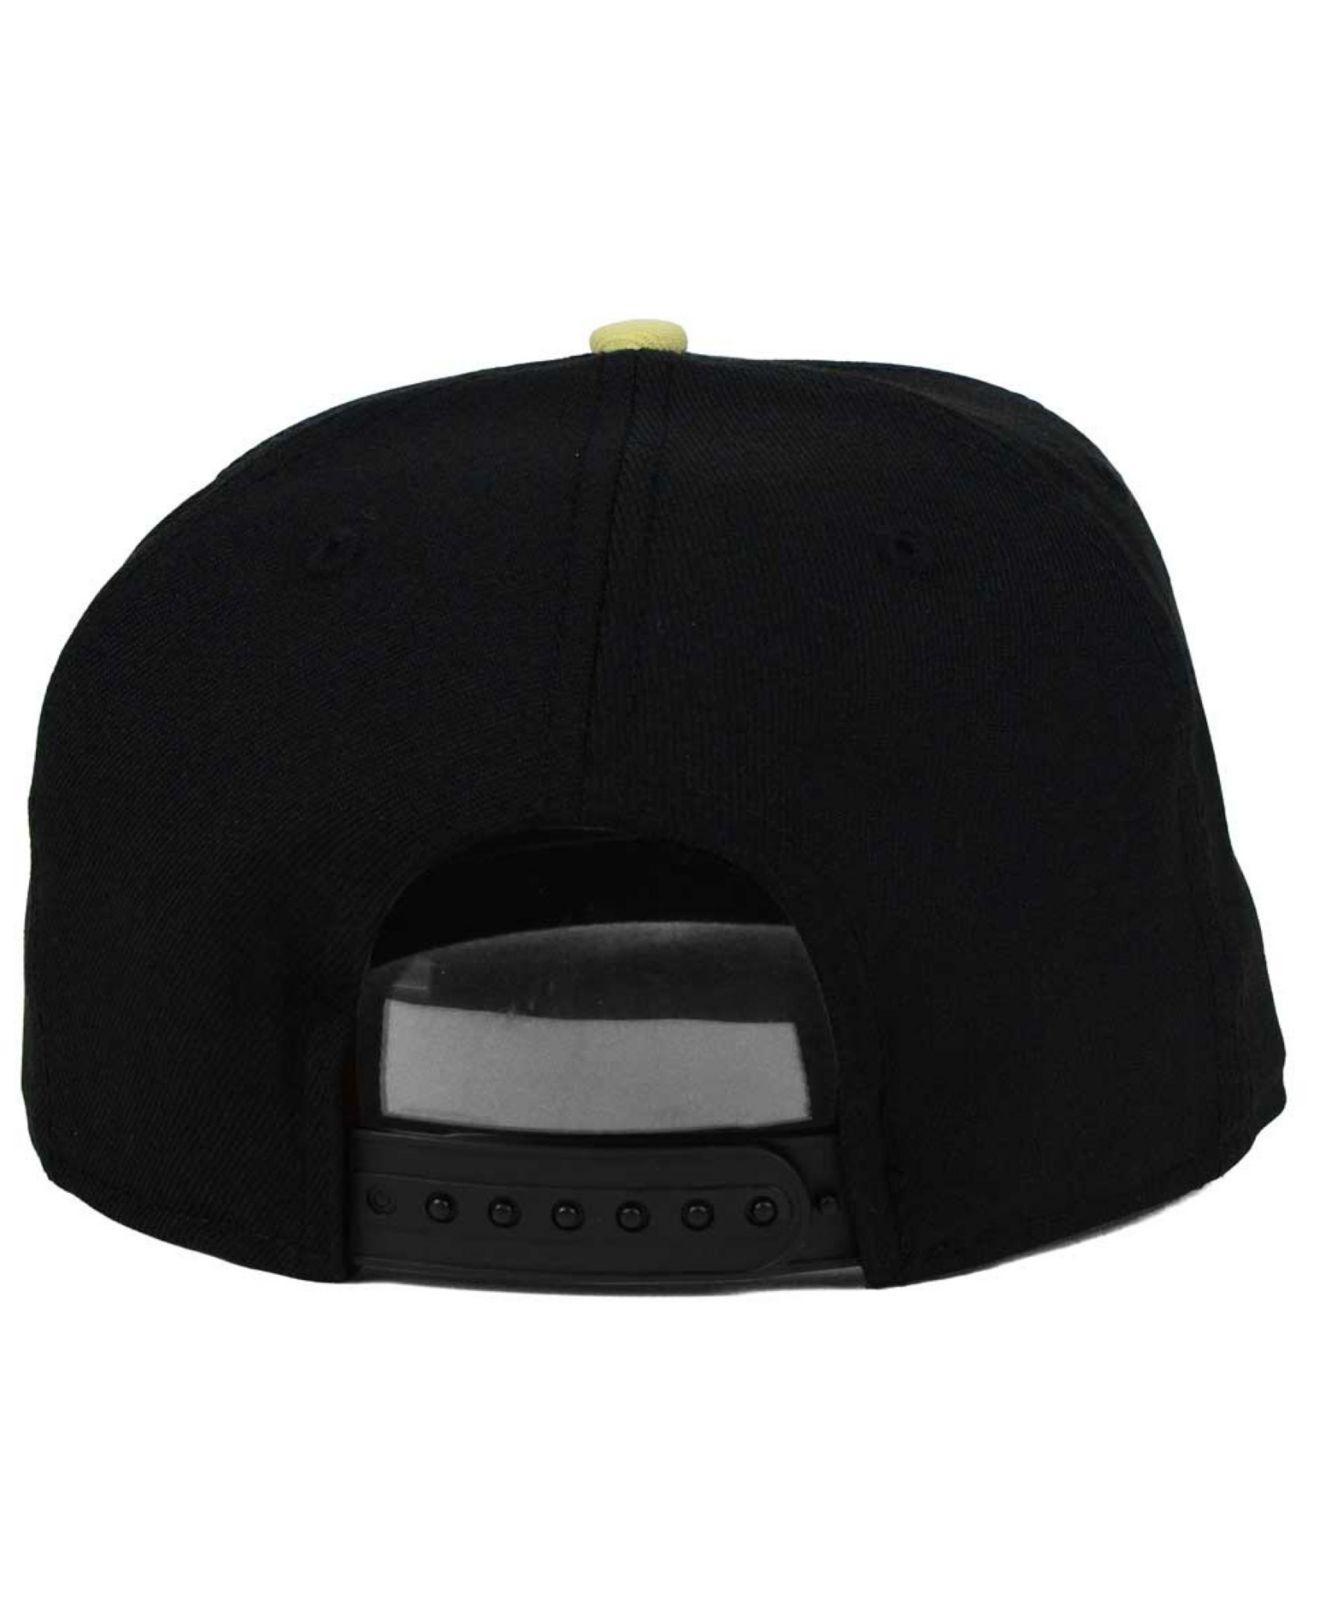 17f8b0ea6b5 Lyst - Ktz Ucf Knights Core 9fifty Snapback Cap in Black for Men